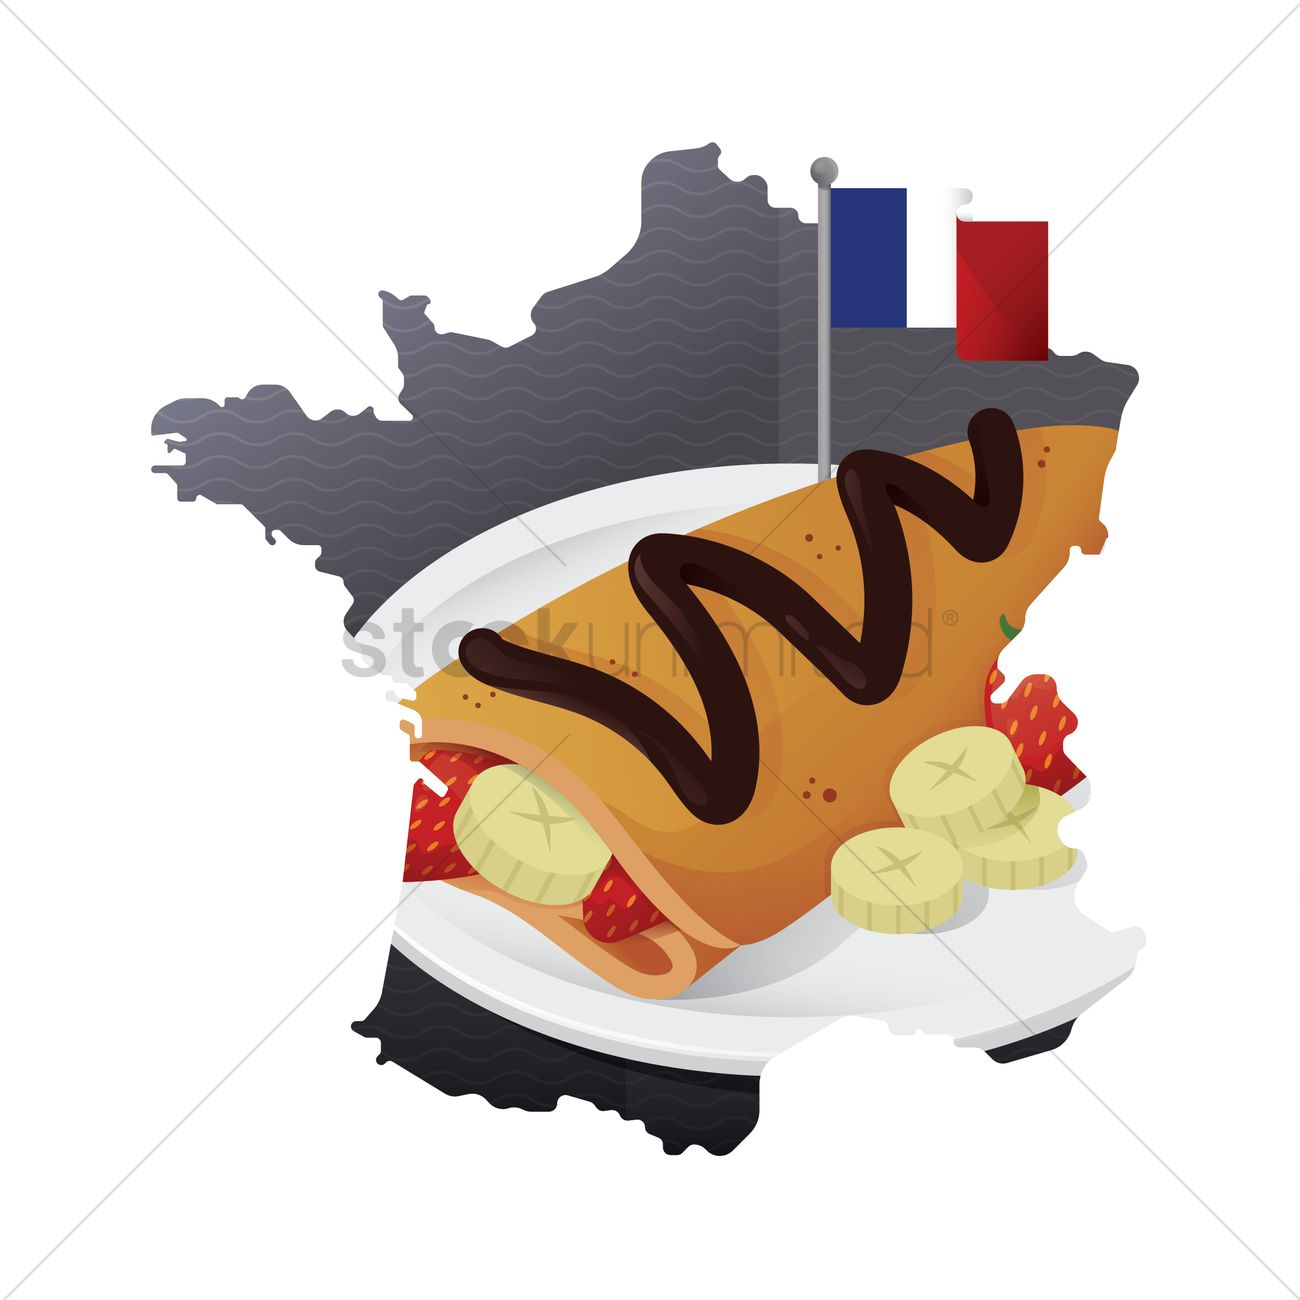 crepe in a plate vector image 1568013 stockunlimited rh stockunlimited com French Female Chef Clip Art French Emblem Clip Art